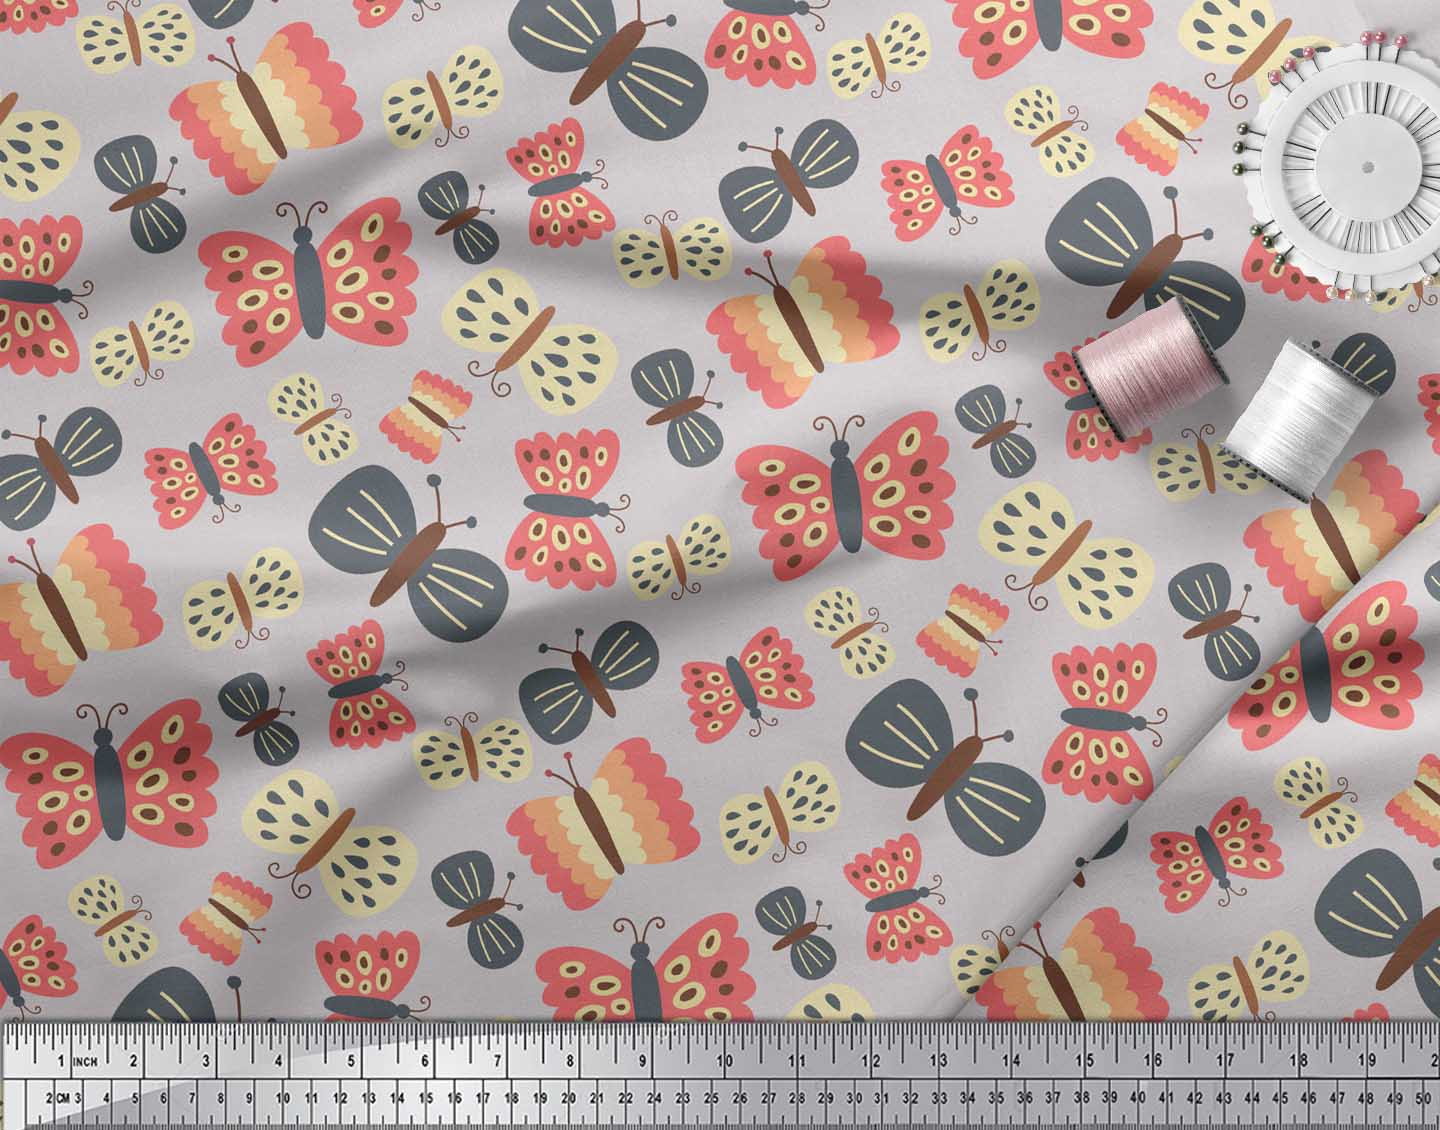 Soimoi-Gray-Cotton-Poplin-Fabric-Insect-Insect-Printed-Fabric-1-6GT thumbnail 4